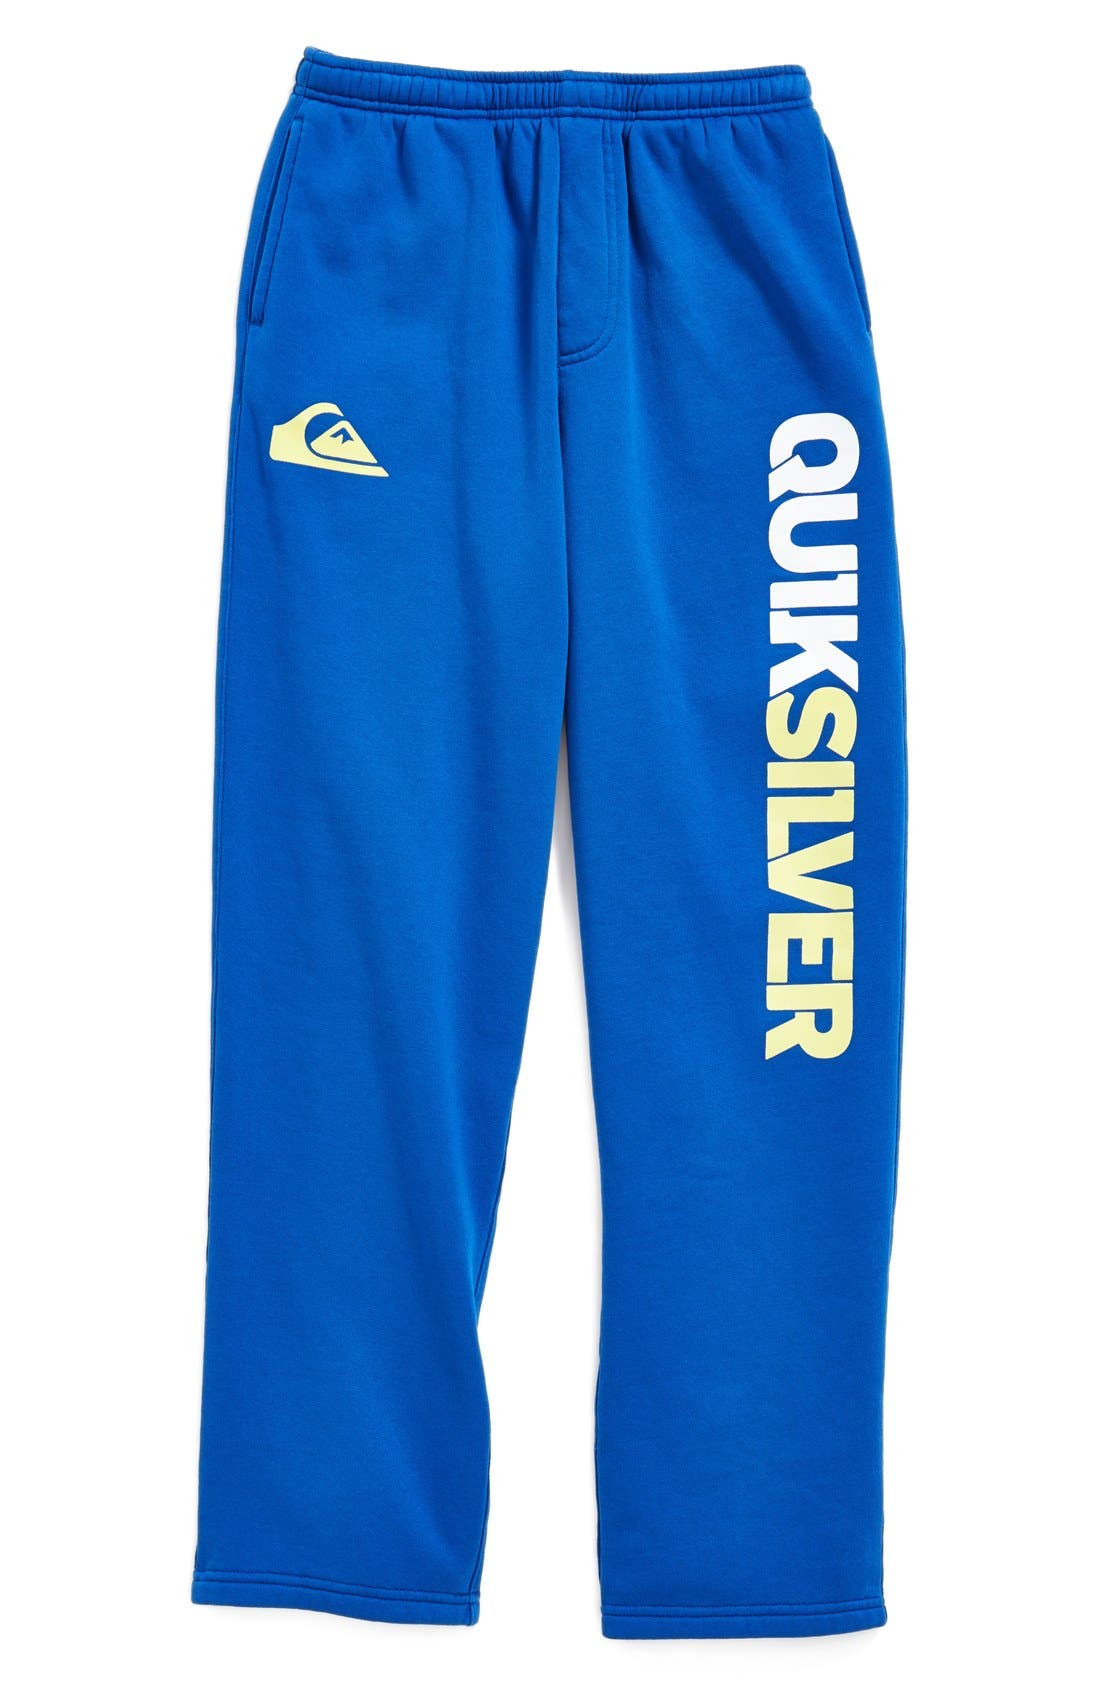 Alternate Image 1 Selected - Quiksilver 'Mountain Wave' Fleece Pants (Toddler Boys & Little Boys) (Online Only)